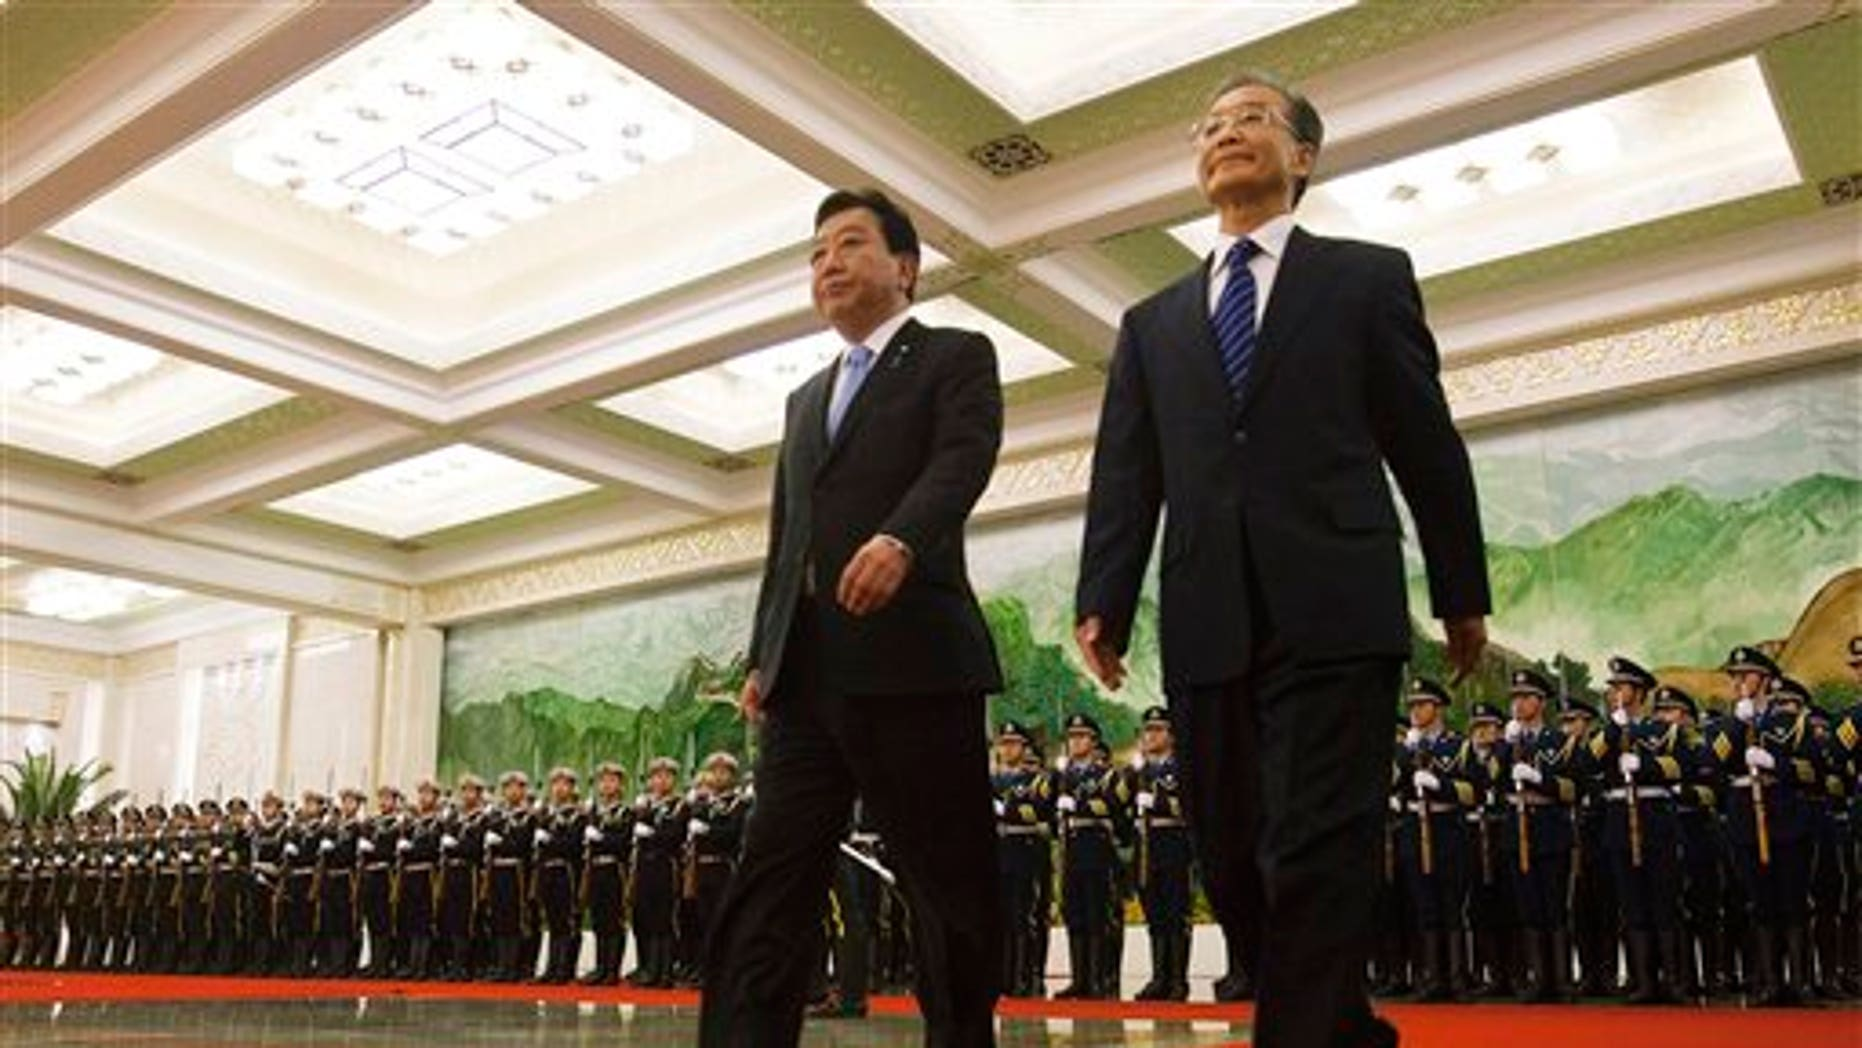 Dec. 25: Japanese Prime Minister Yoshihiko Noda, left, walks with Chinese Premier Wen Jiabao after attending a welcoming ceremony at the Great Hall of the People in Beijing.